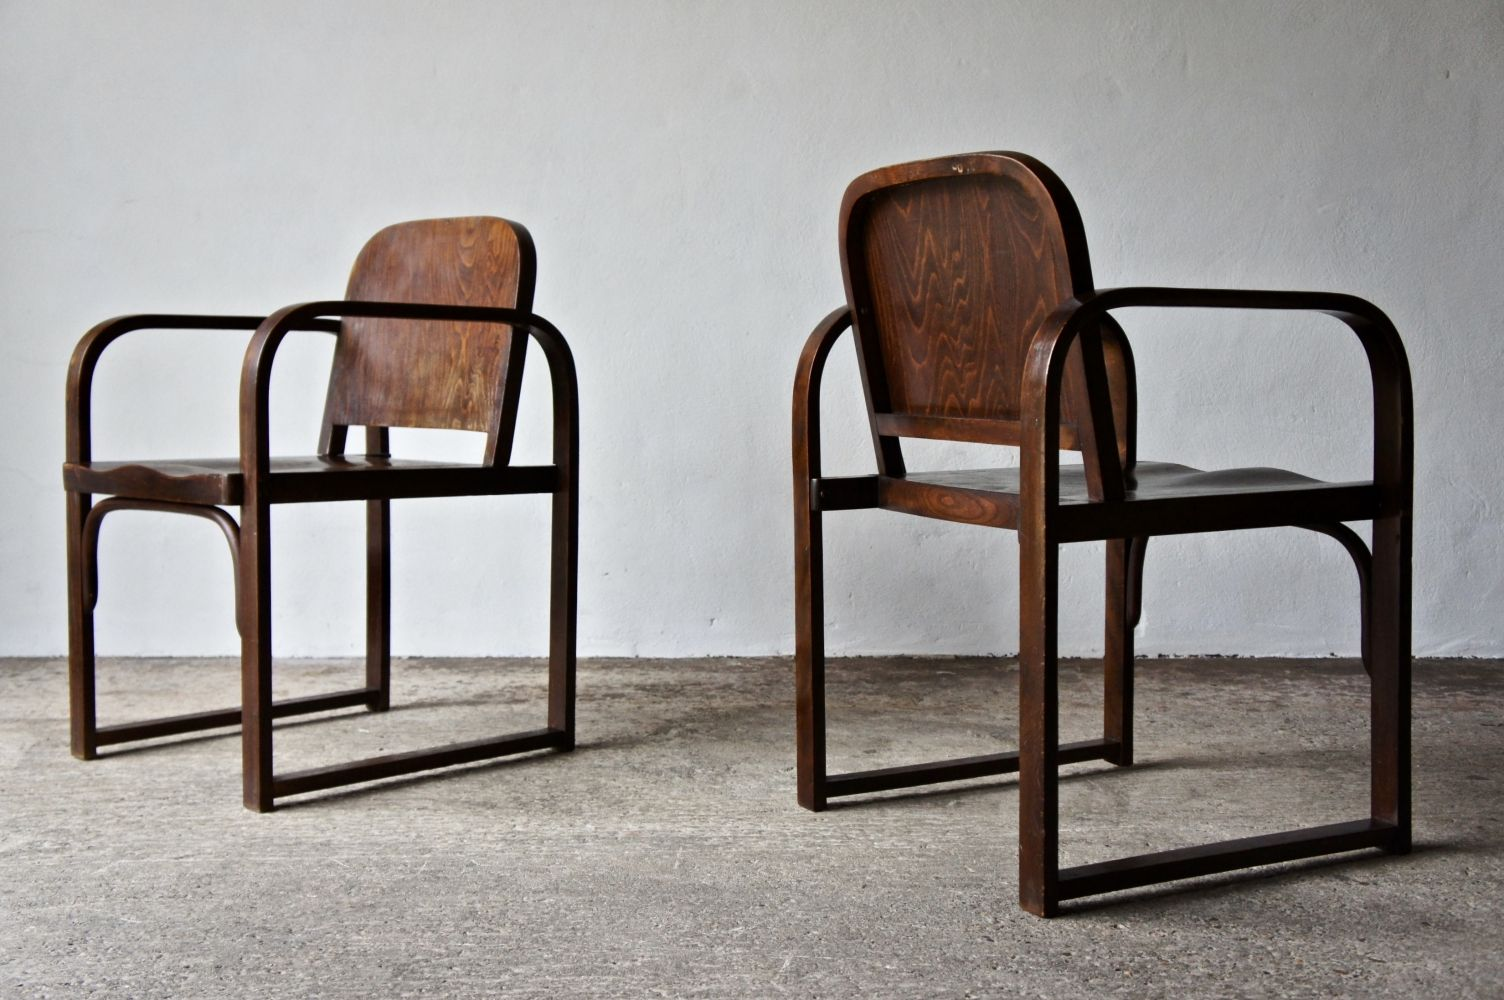 Sedia Karol Wood 1930 S A 745 F Chairs By Tatra Möbel Ag 90772 Home Chair